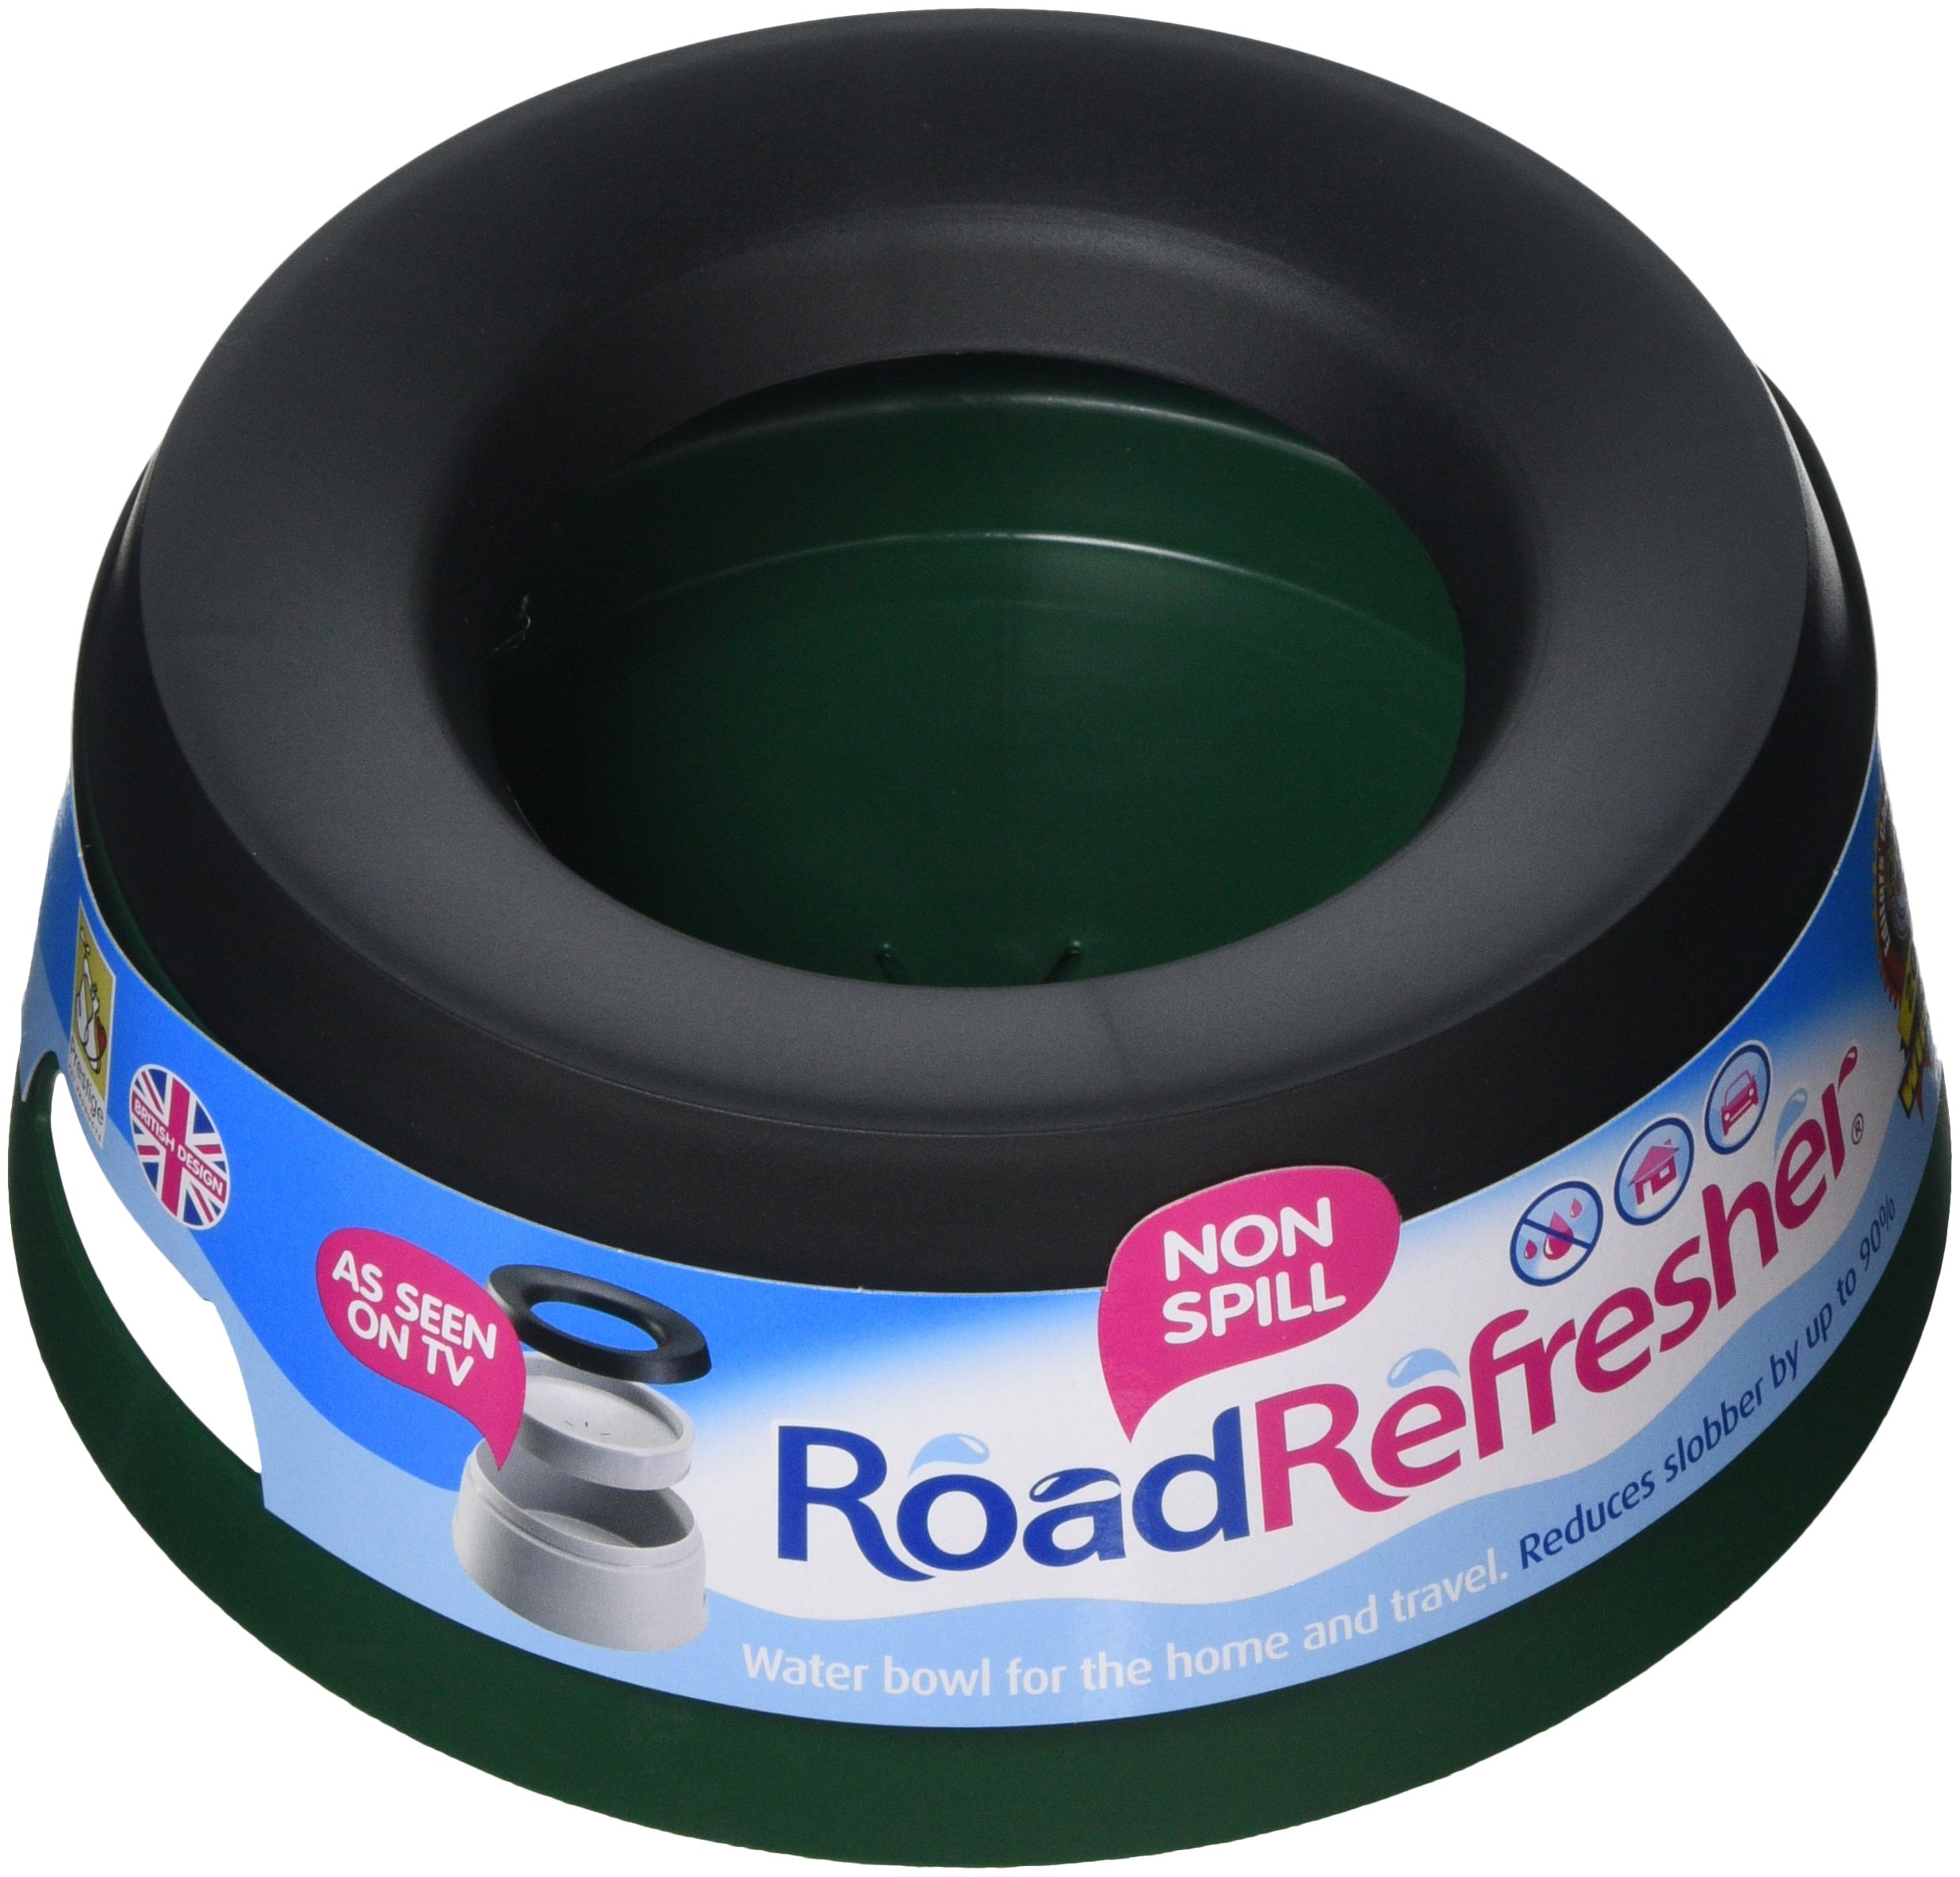 Prestige Road Refresher Non Spill Water Bowl (Large) (Green)